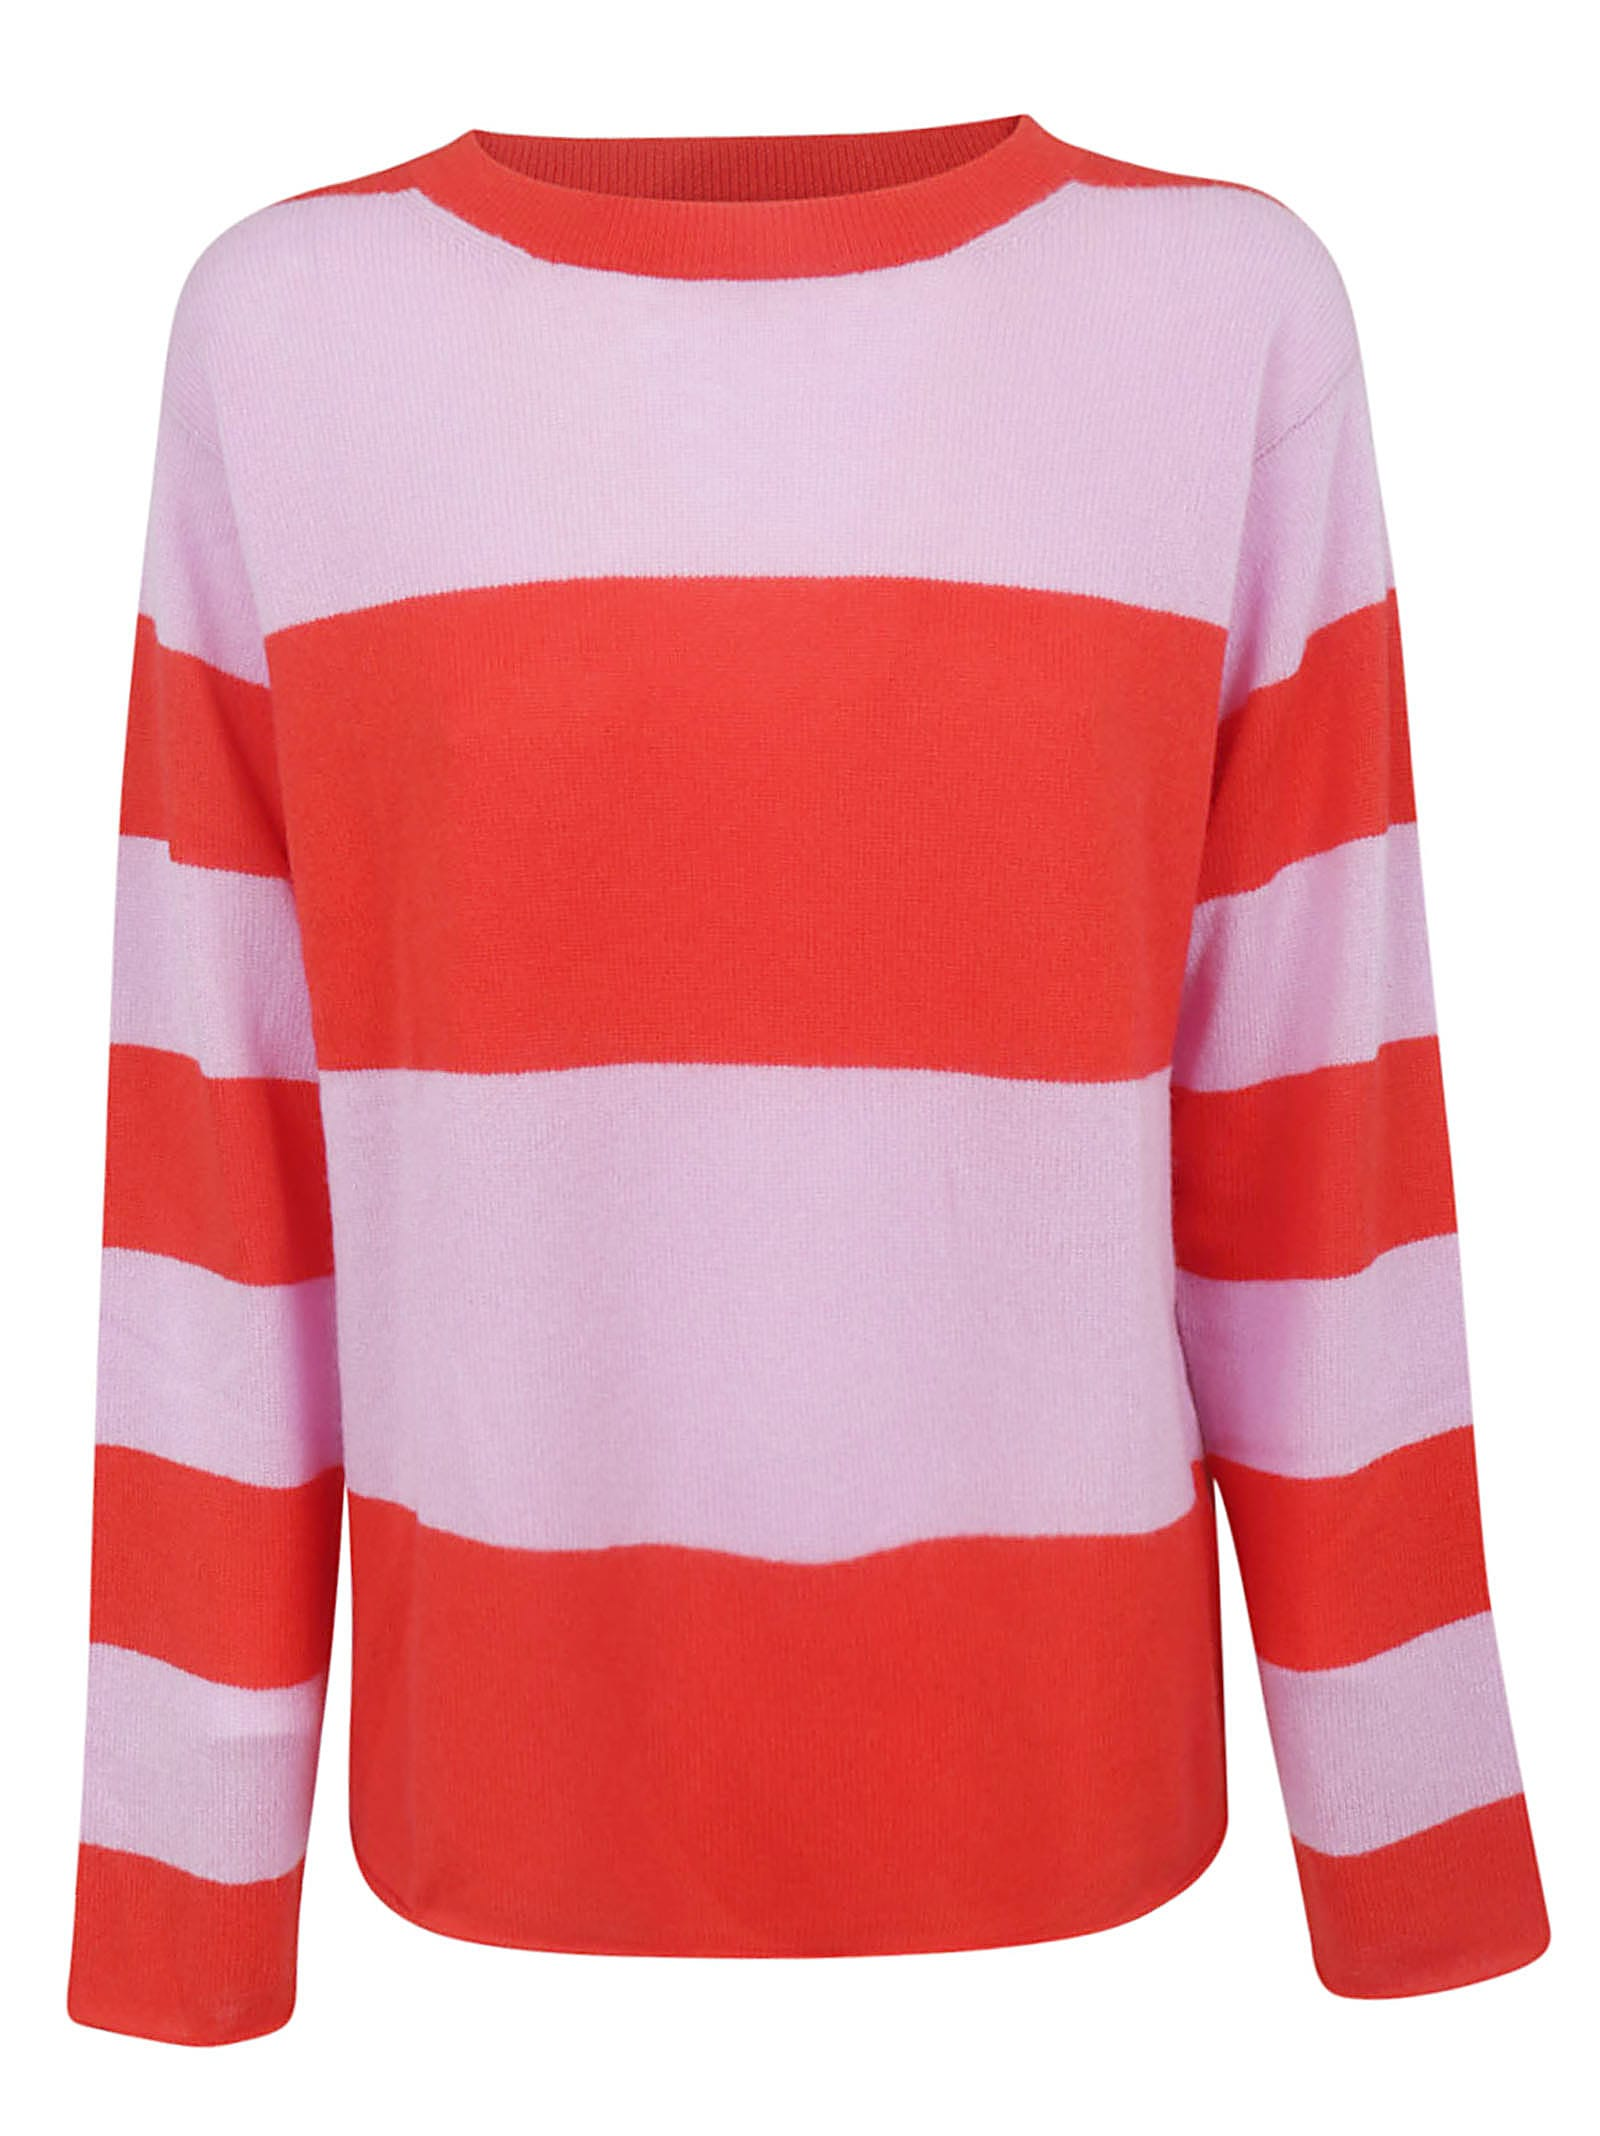 Sofie dHoore Striped Sweater